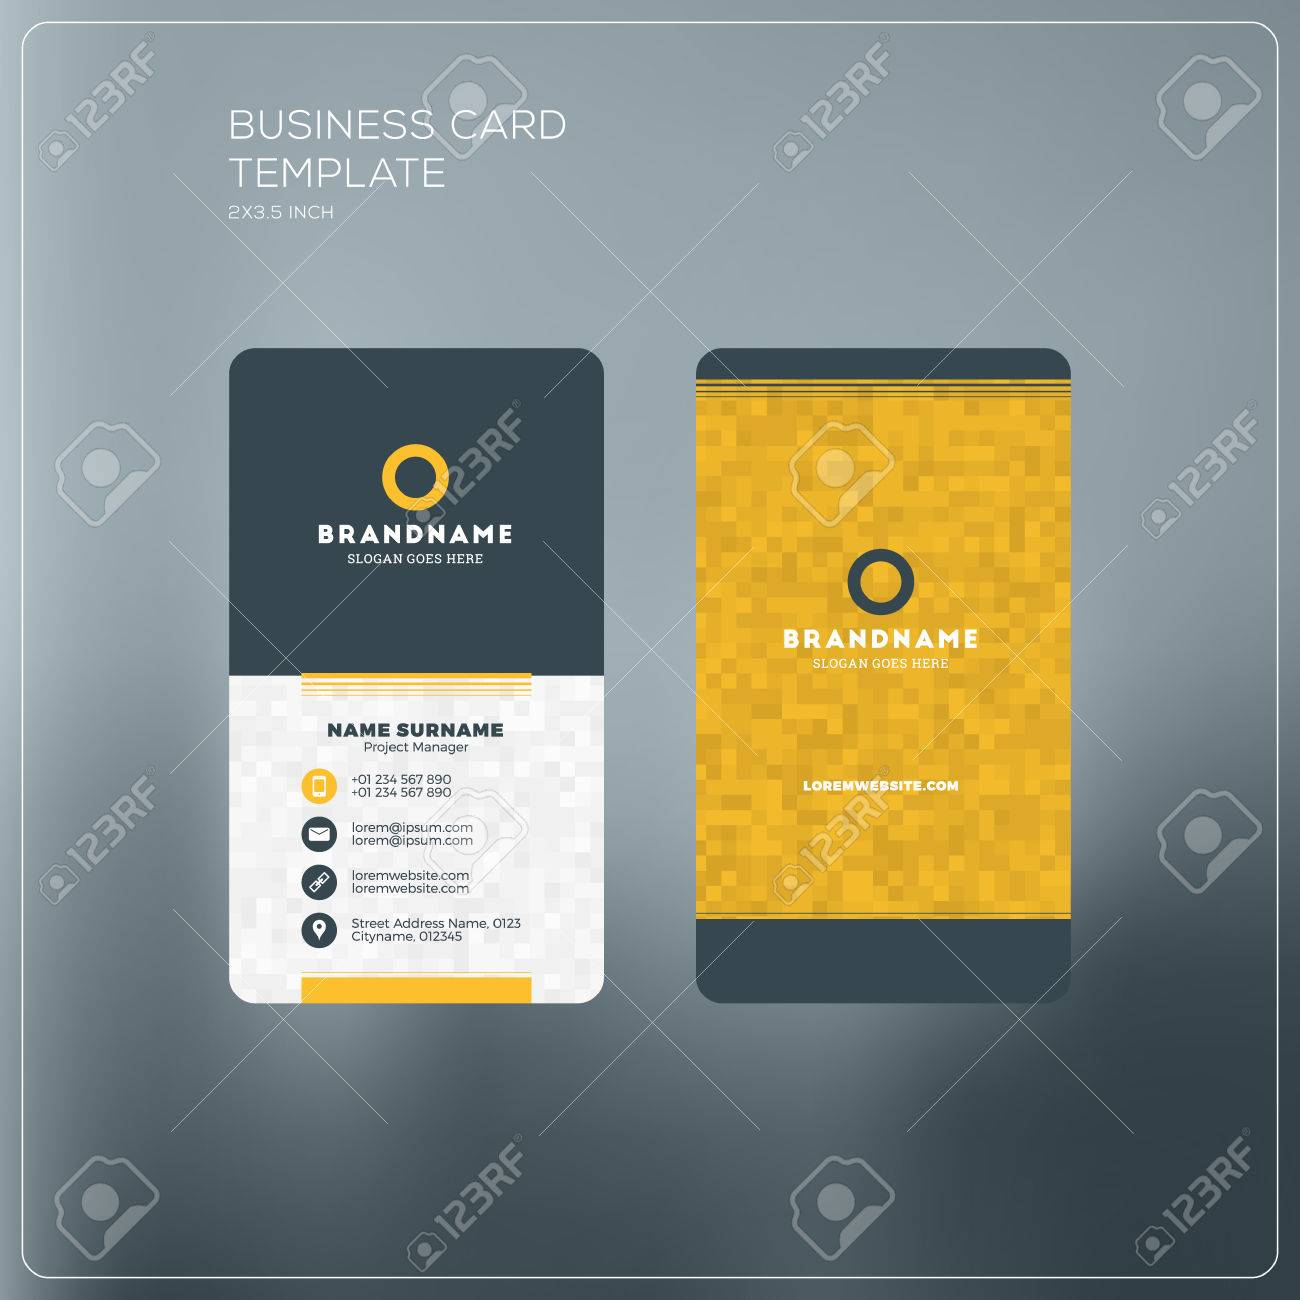 Vertical business card print template personal business card vector vertical business card print template personal business card with company logo black and yellow colors clean flat design vector illustration flashek Image collections